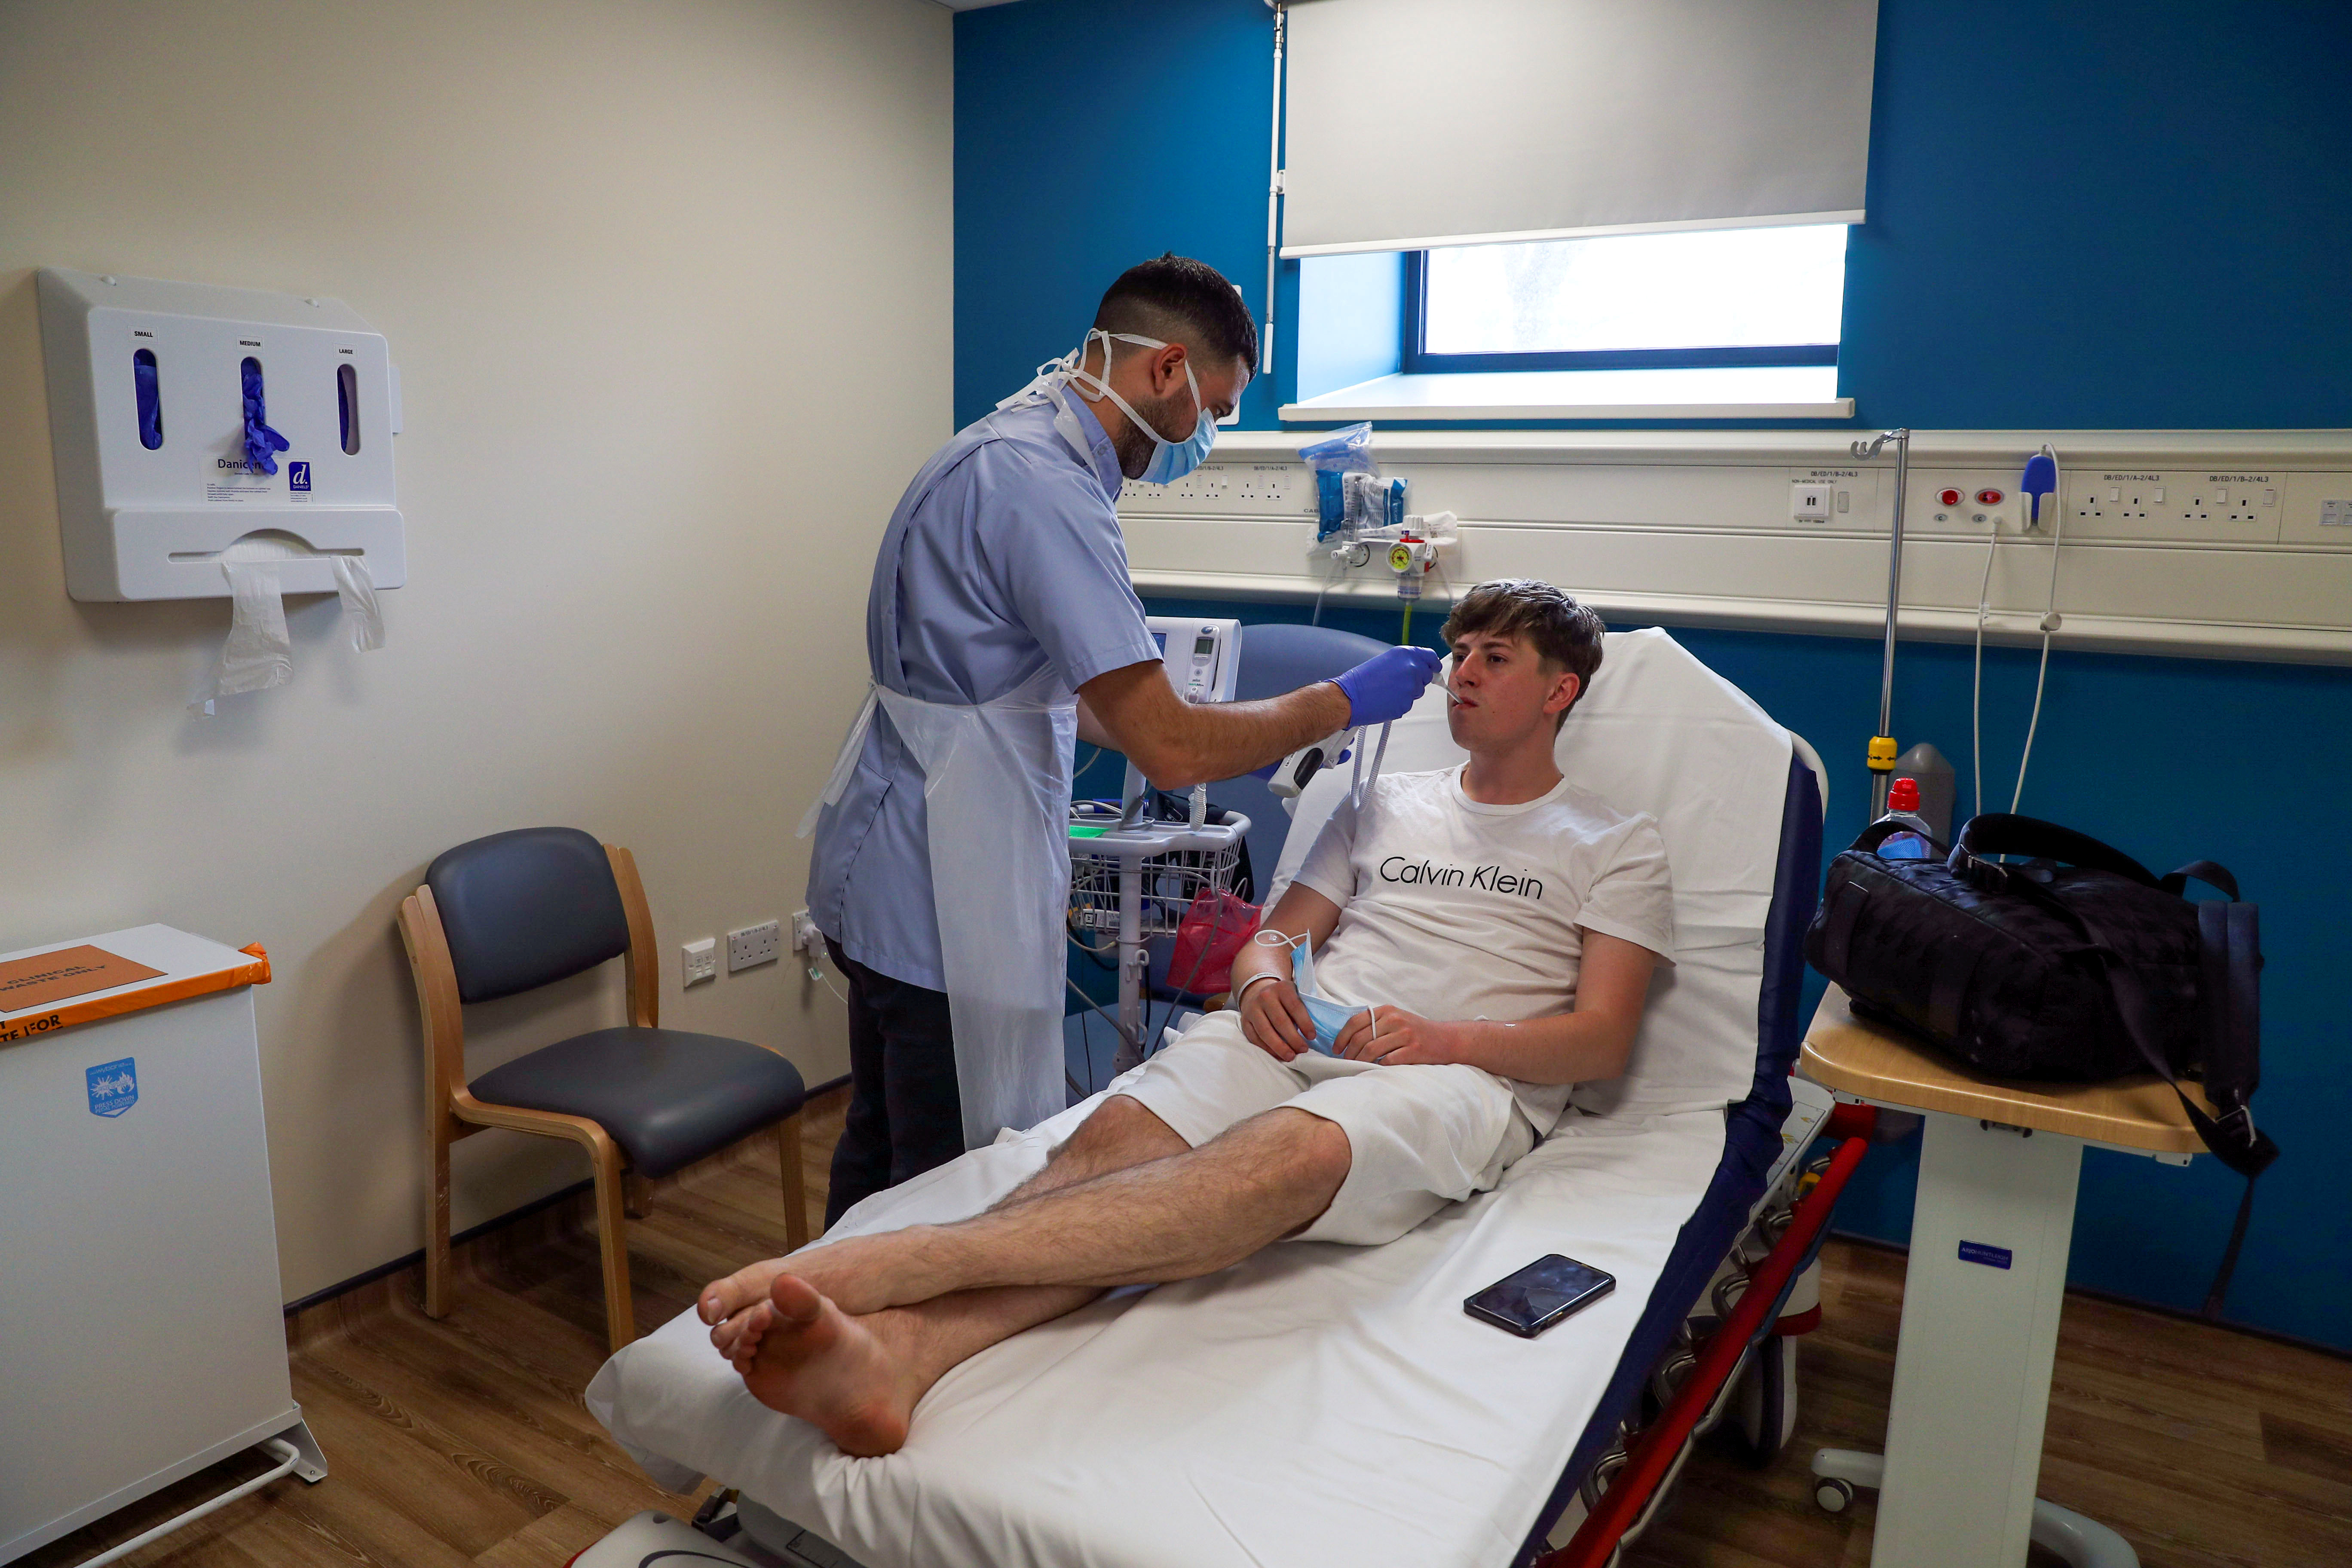 Patient Chay Godfrey is treated by staff nurse Elia Sarno in the Emergency Department at Wexham Park Hospital near Slough, Britain, May 22, 2020. Picture taken May 22, 2020. Steve Parsons/Pool via REUTERS - RC2XWG9NG0V2